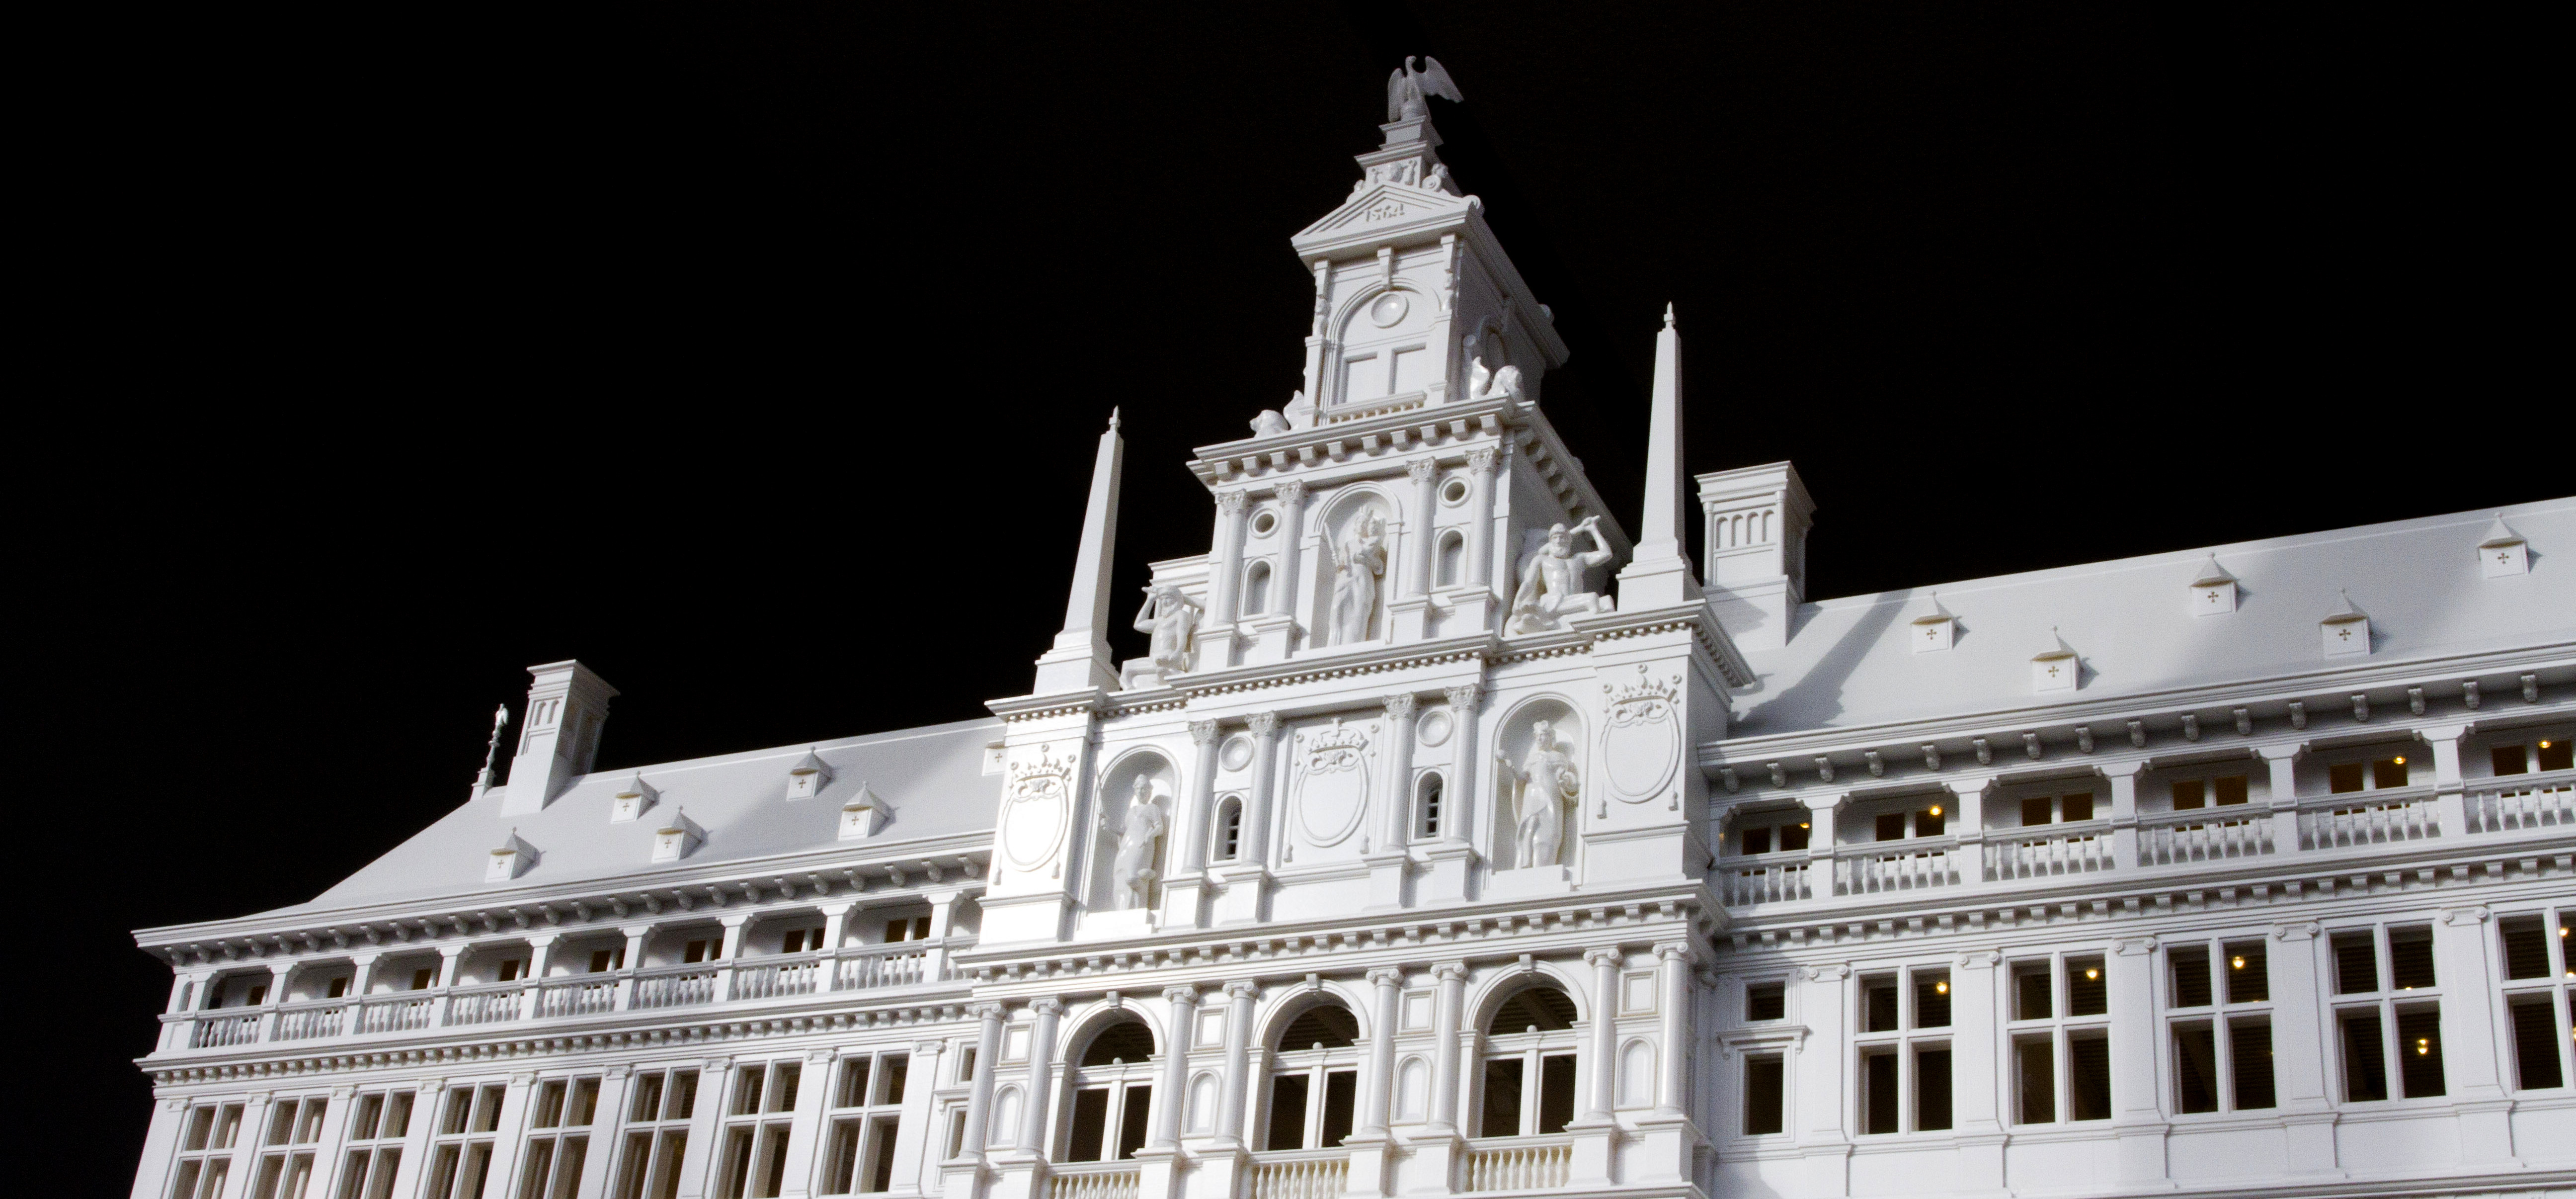 Visit the Miniature, 3D-Printed City Hall of Antwerp